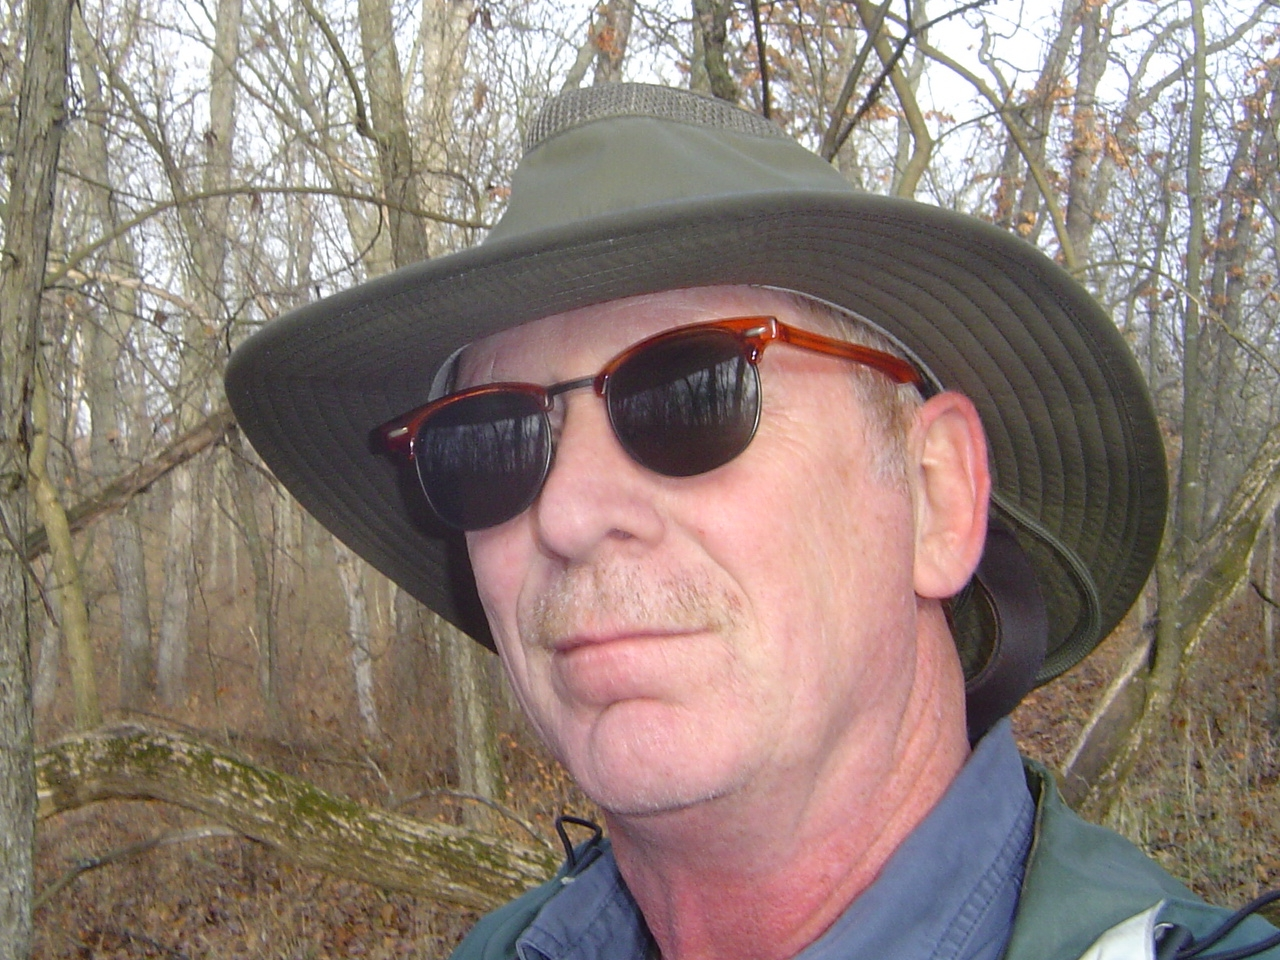 c1f40ac8f8a8d Ode to a (Tilley) hat - Fireside Chatter - TrailGroove Magazine